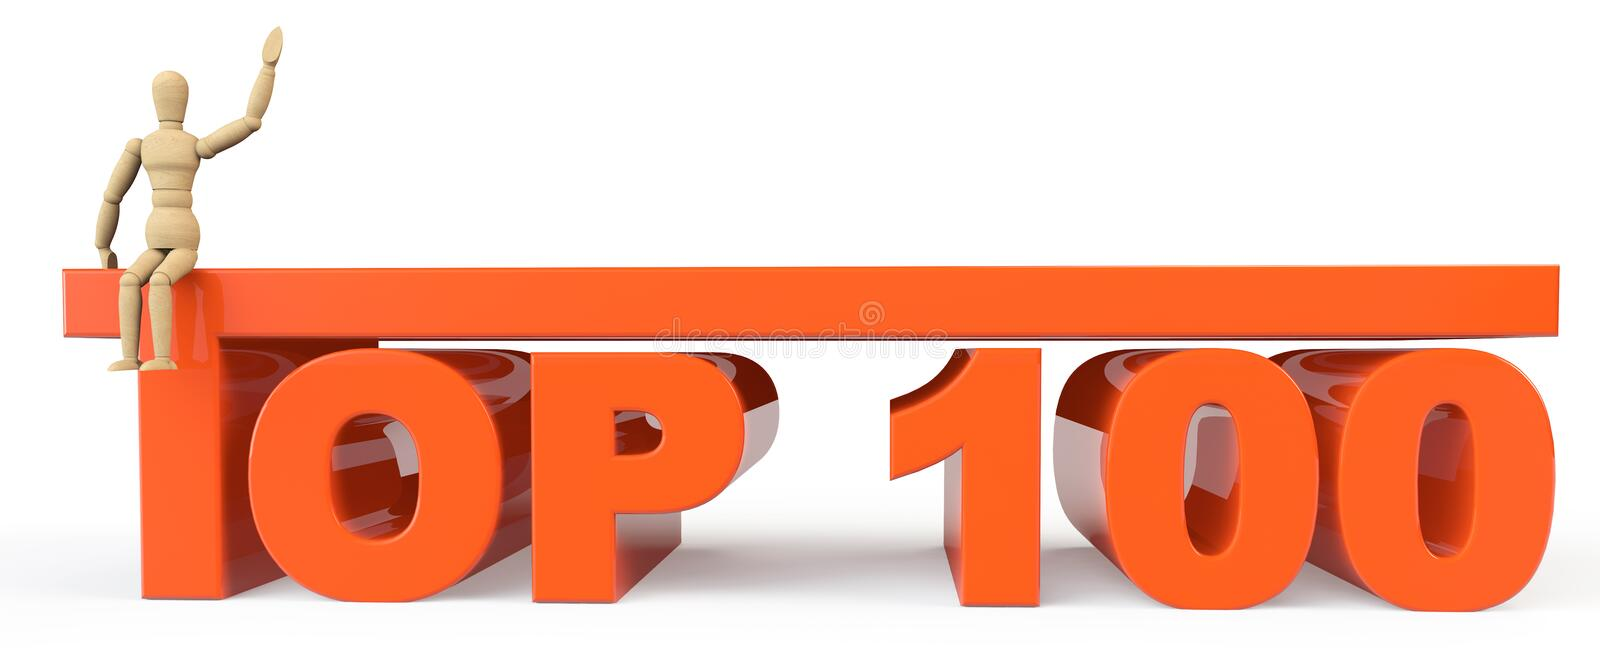 Top 100 sign with dummy. On a white background royalty free illustration